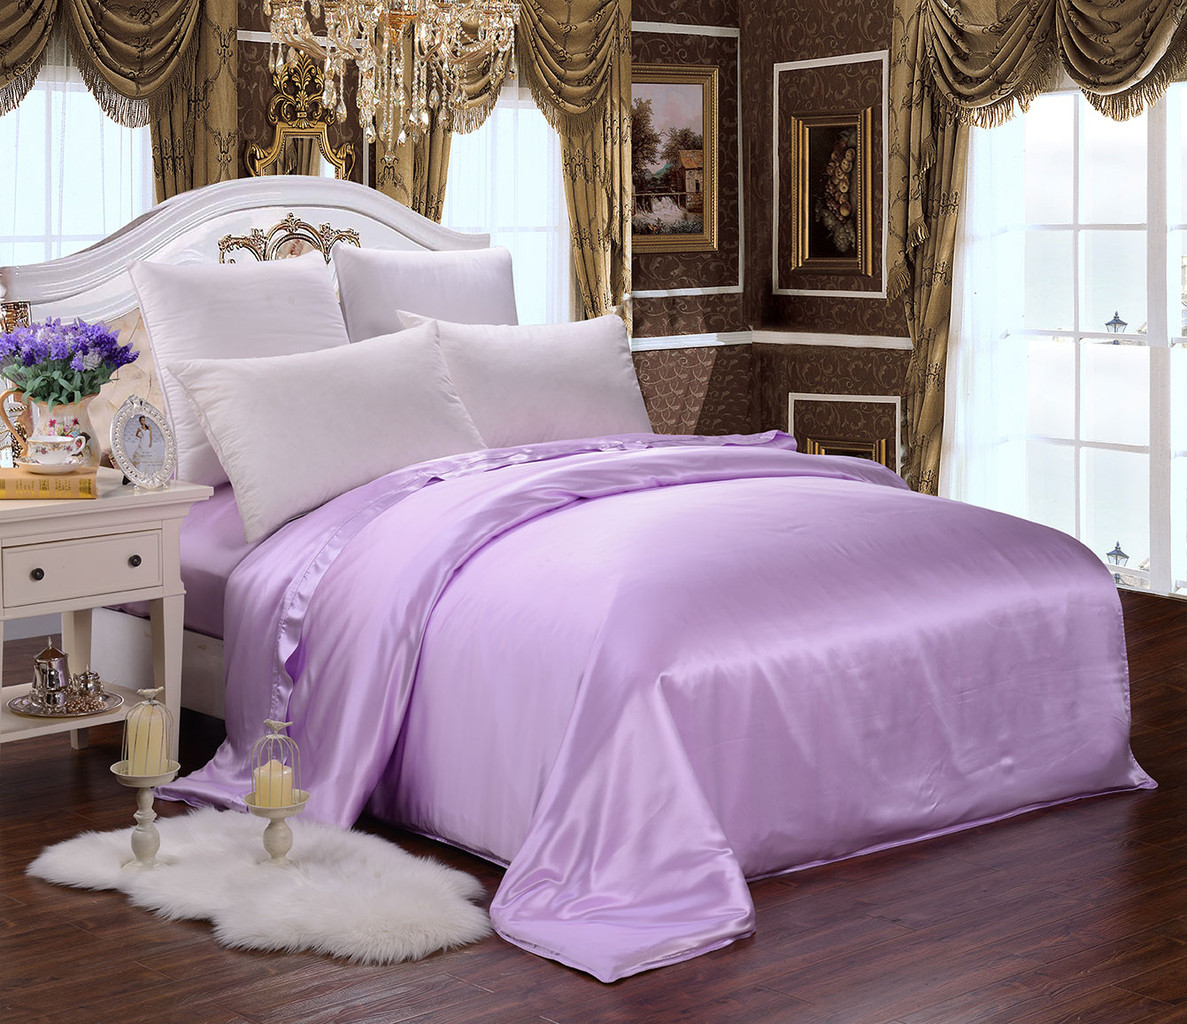 Lavender Silk Duvet Cover Set Silky Affection